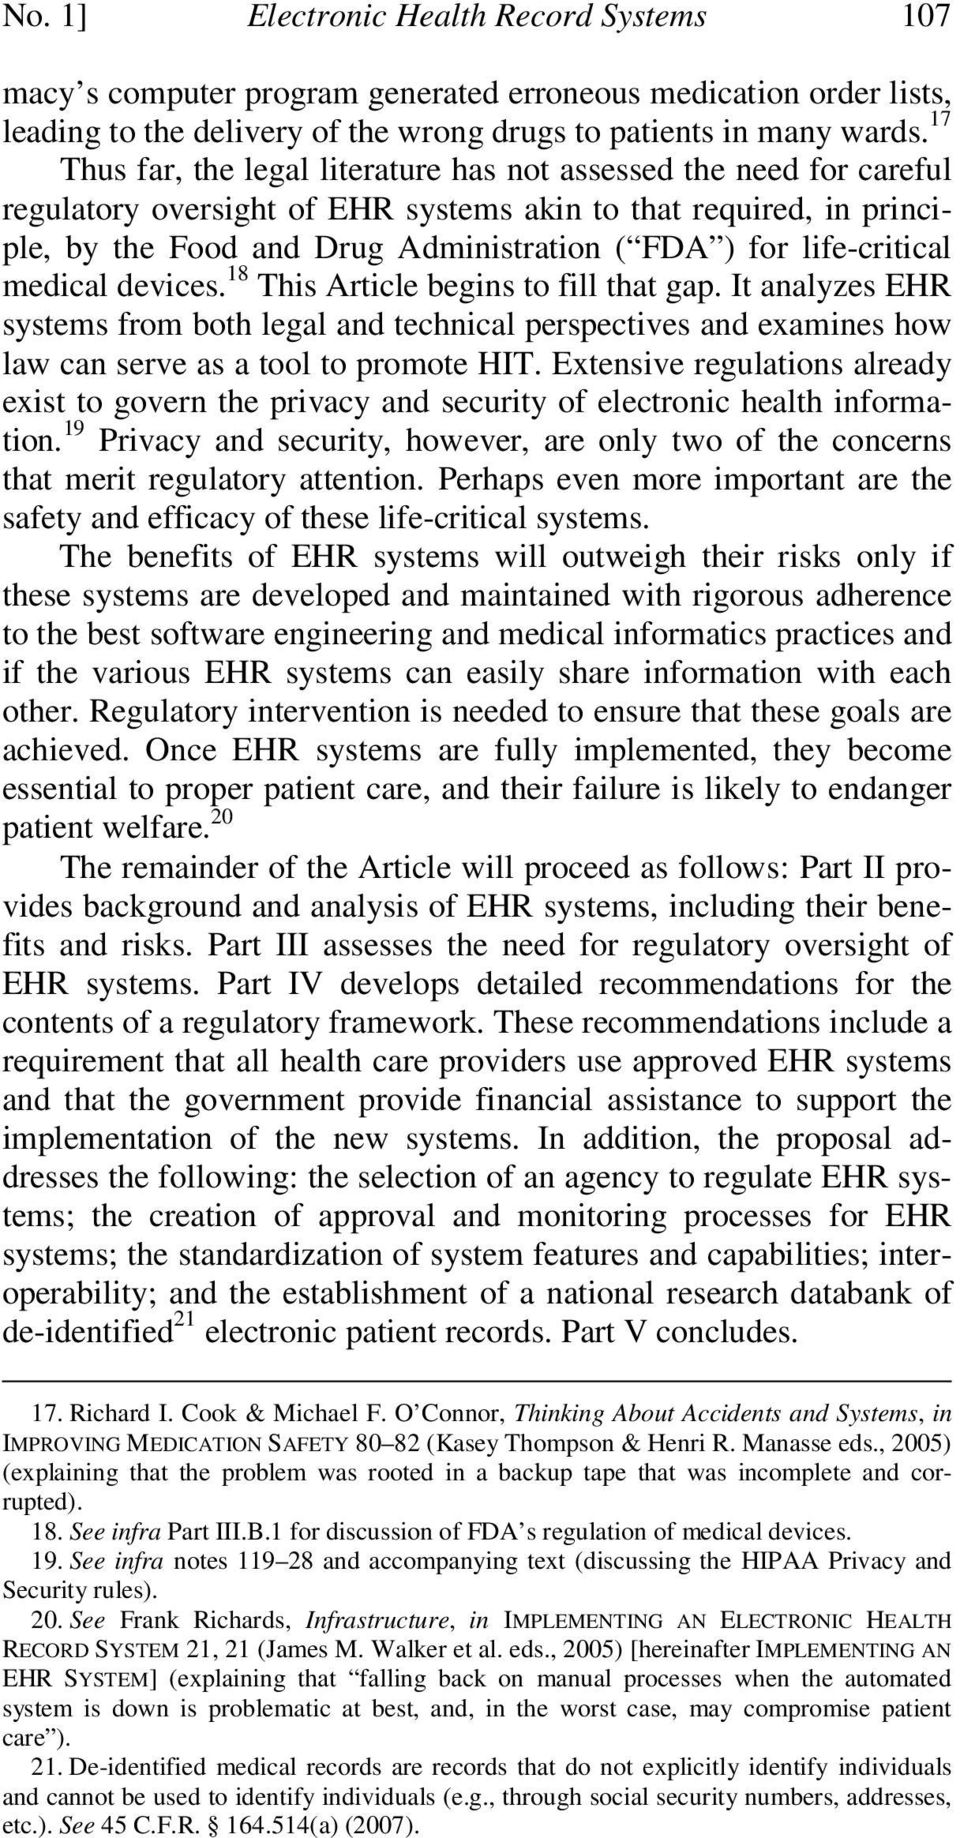 life-critical medical devices. 18 This Article begins to fill that gap. It analyzes EHR systems from both legal and technical perspectives and examines how law can serve as a tool to promote HIT.